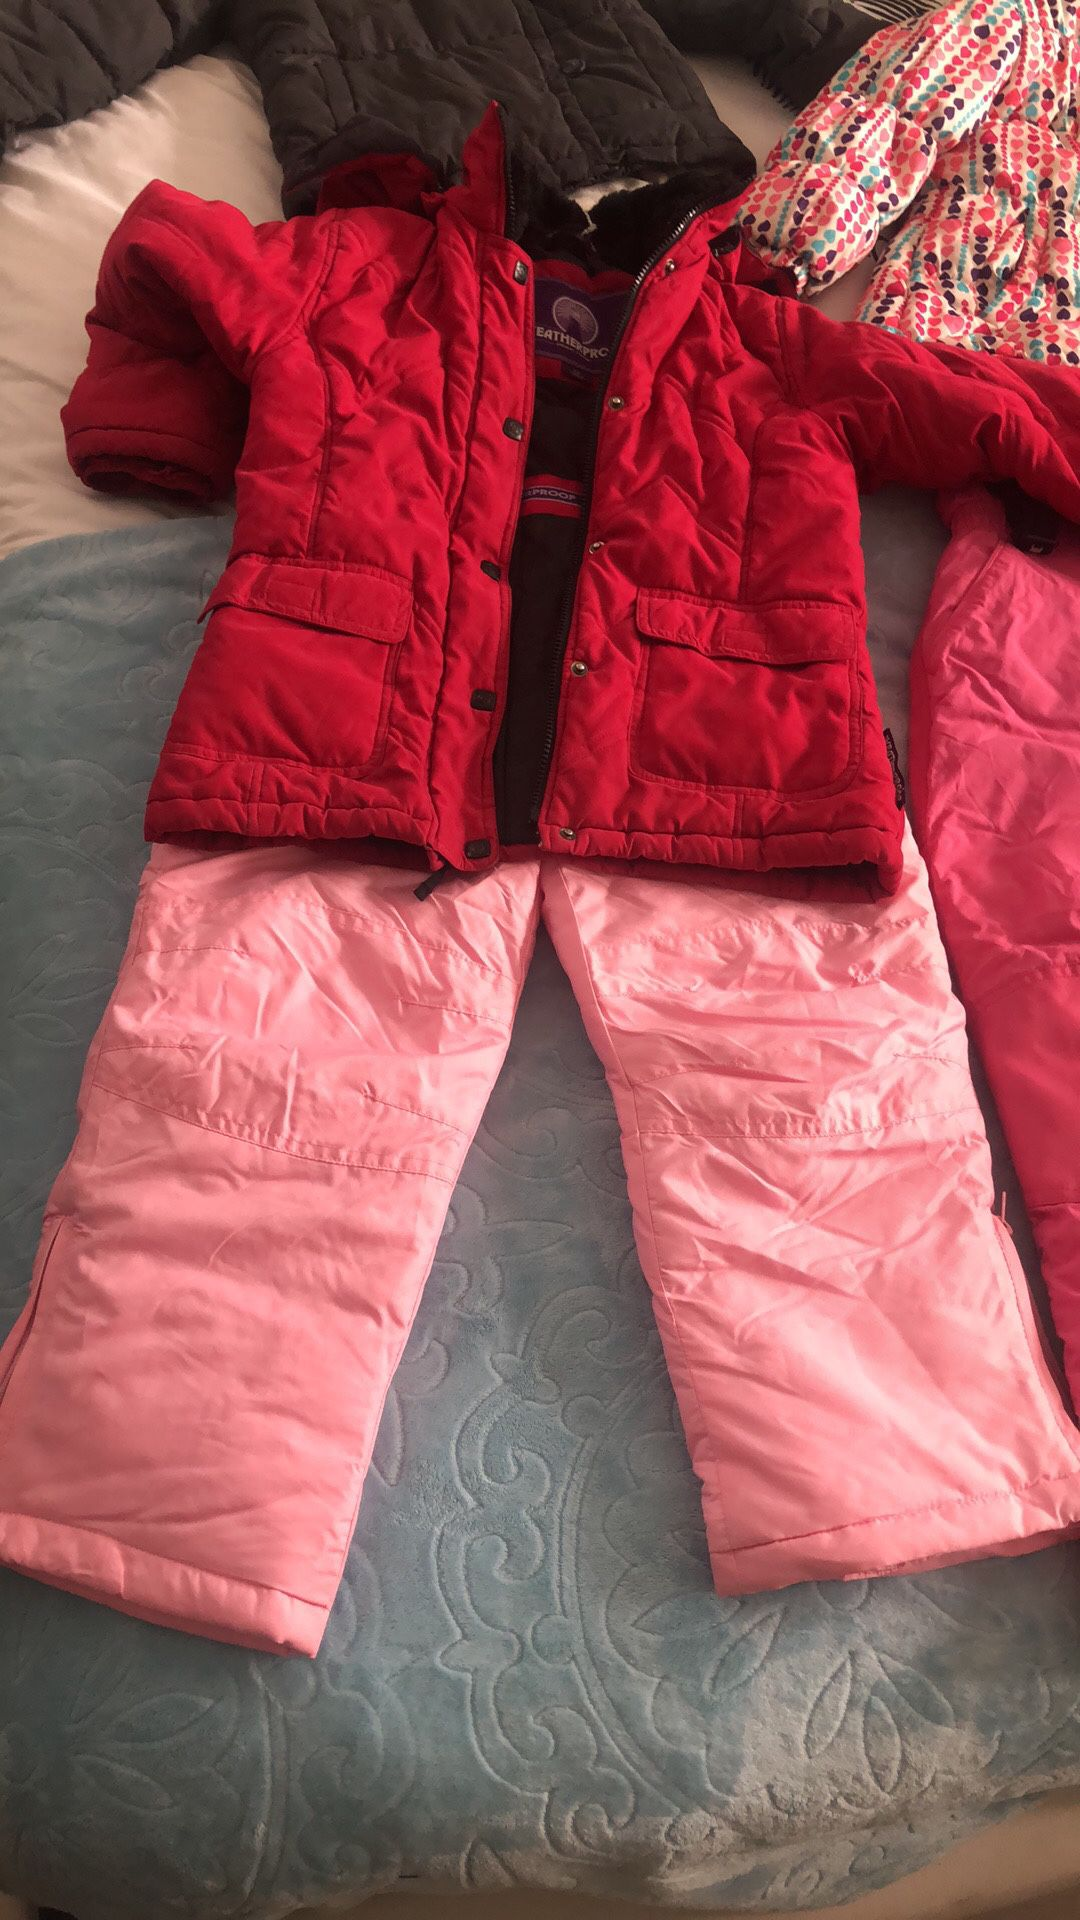 Snow bibs jackets boots any size for kids and adults